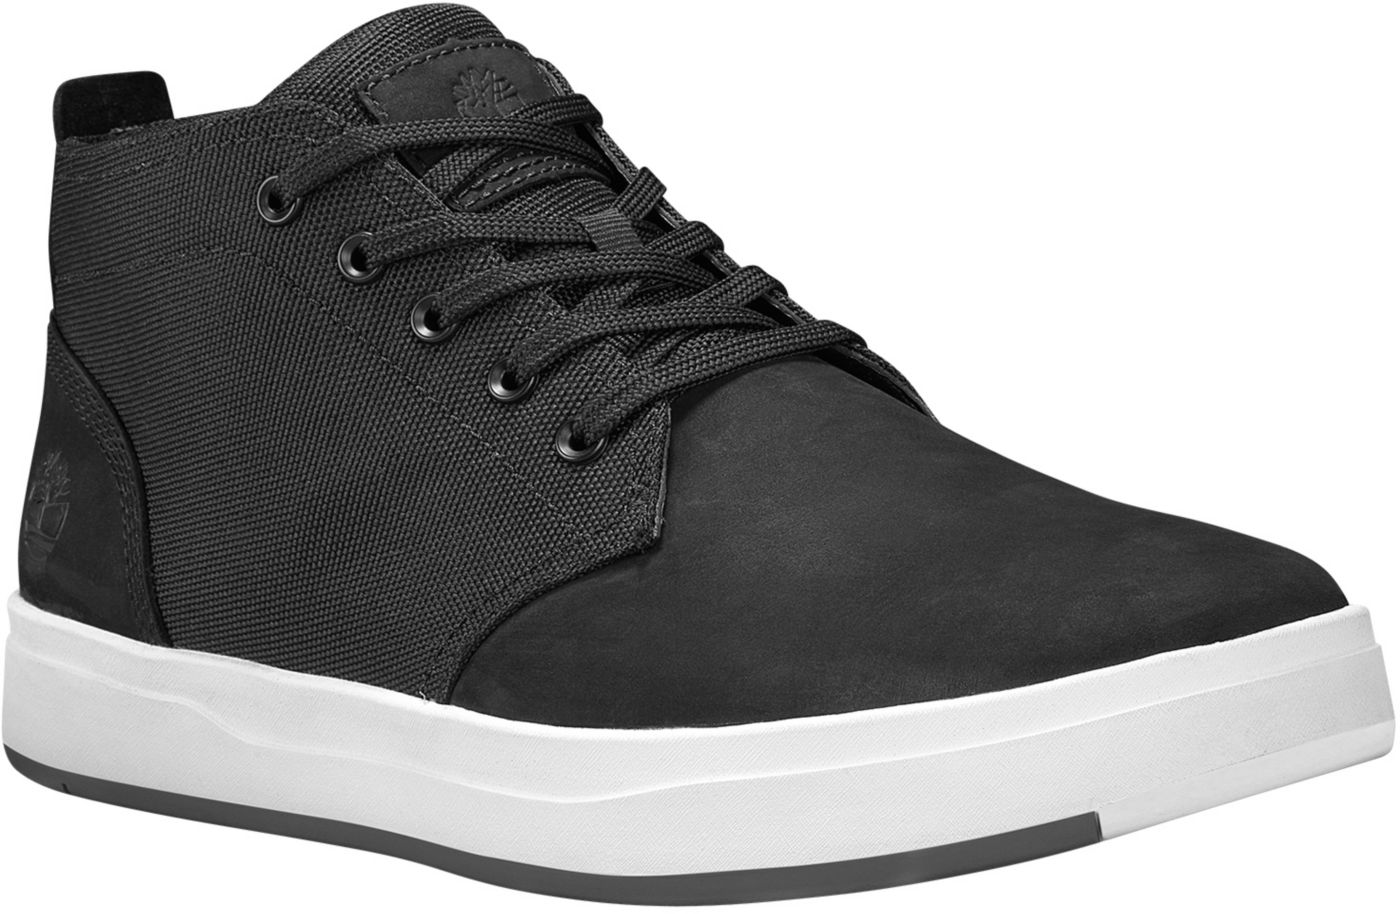 Timberland Men's Davis Square Chukka Shoes